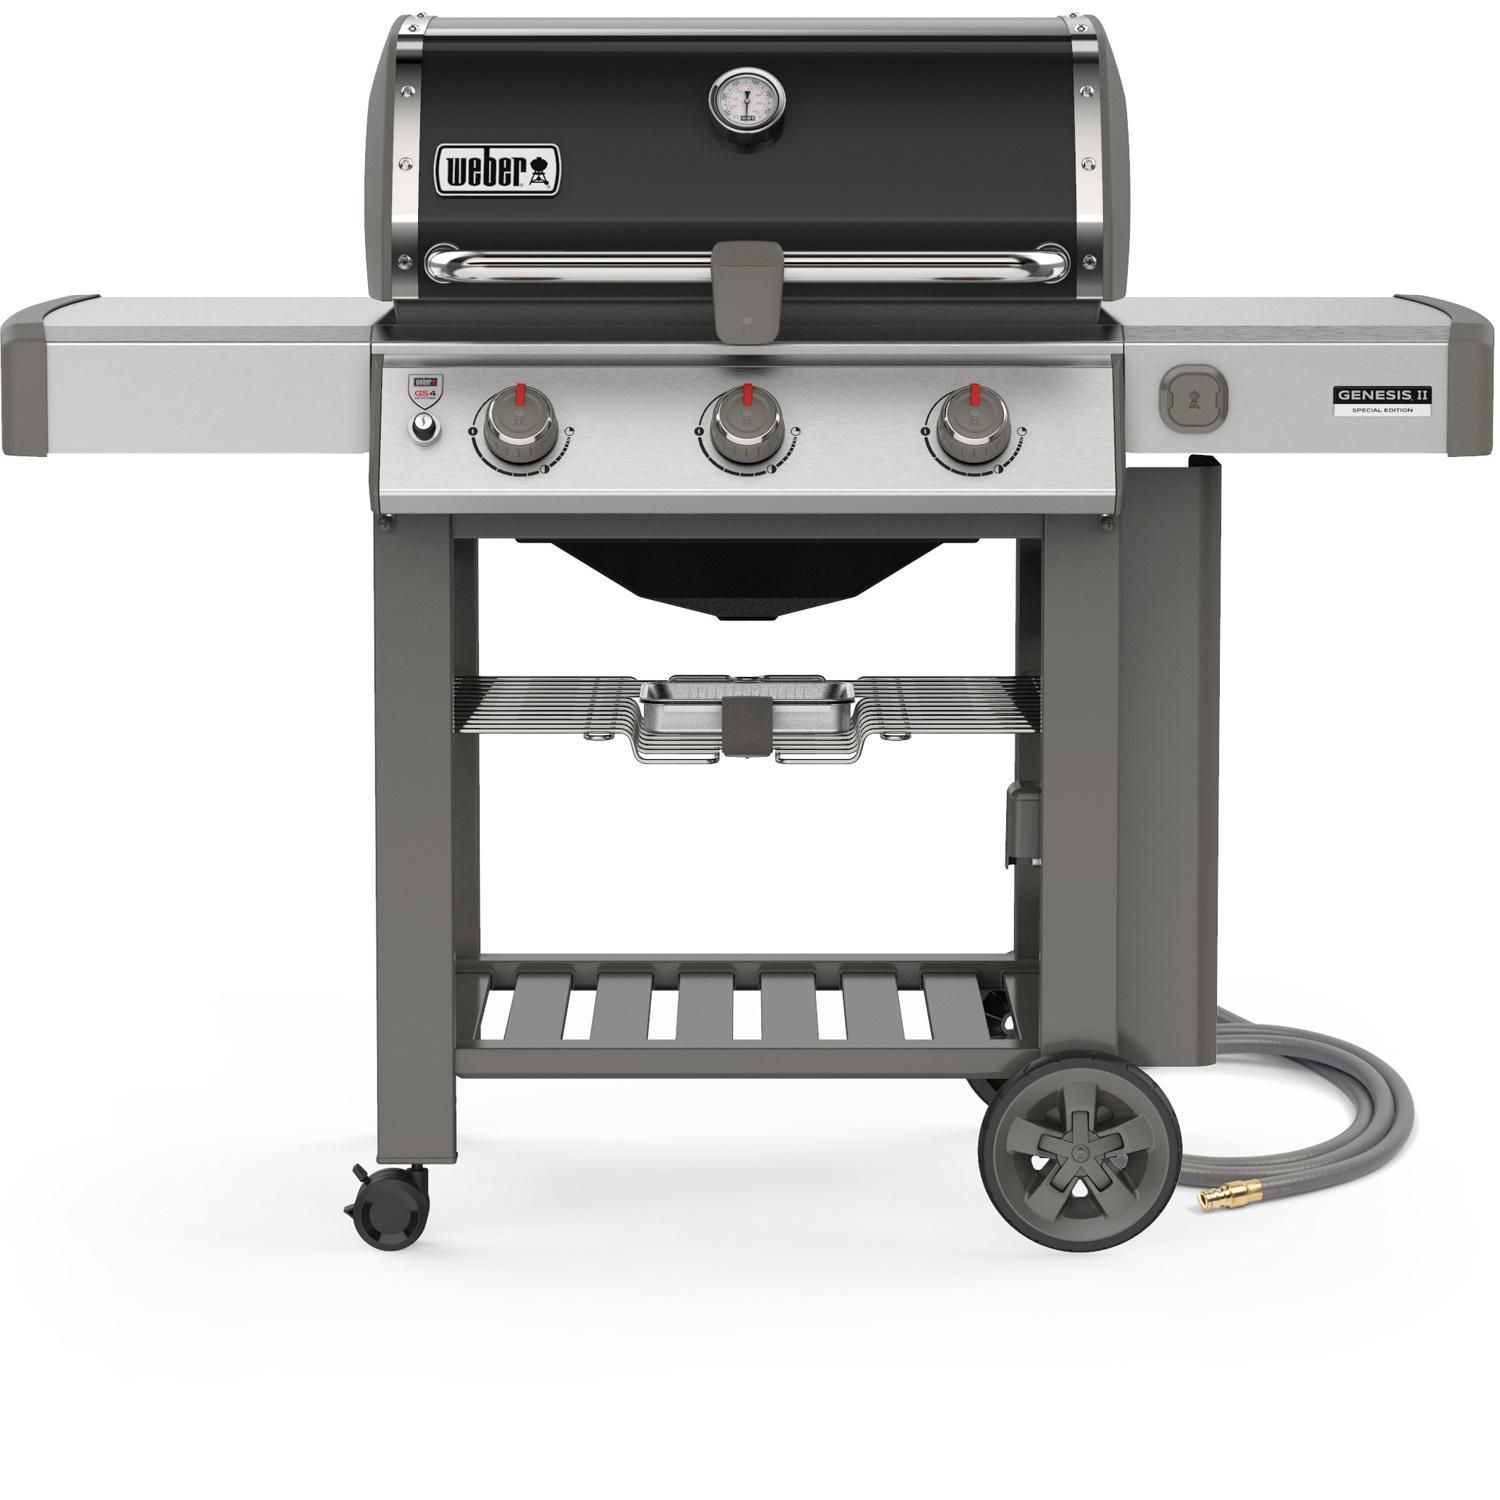 Pin On Best Propane Grill 2019